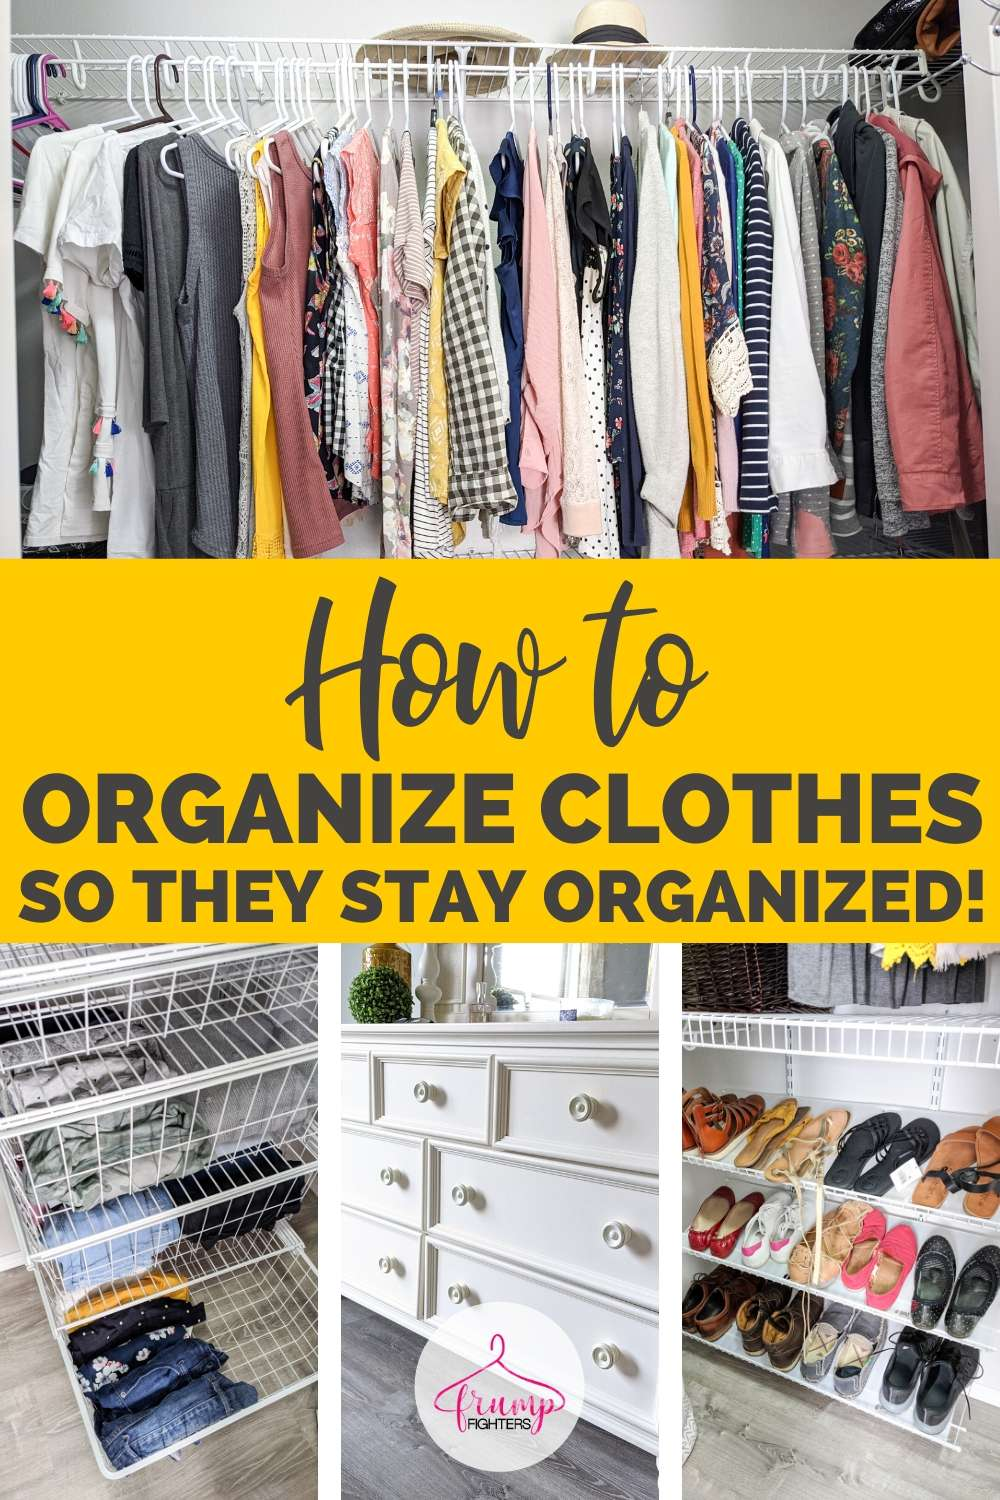 Best way to Organize the Clothes in your Closet